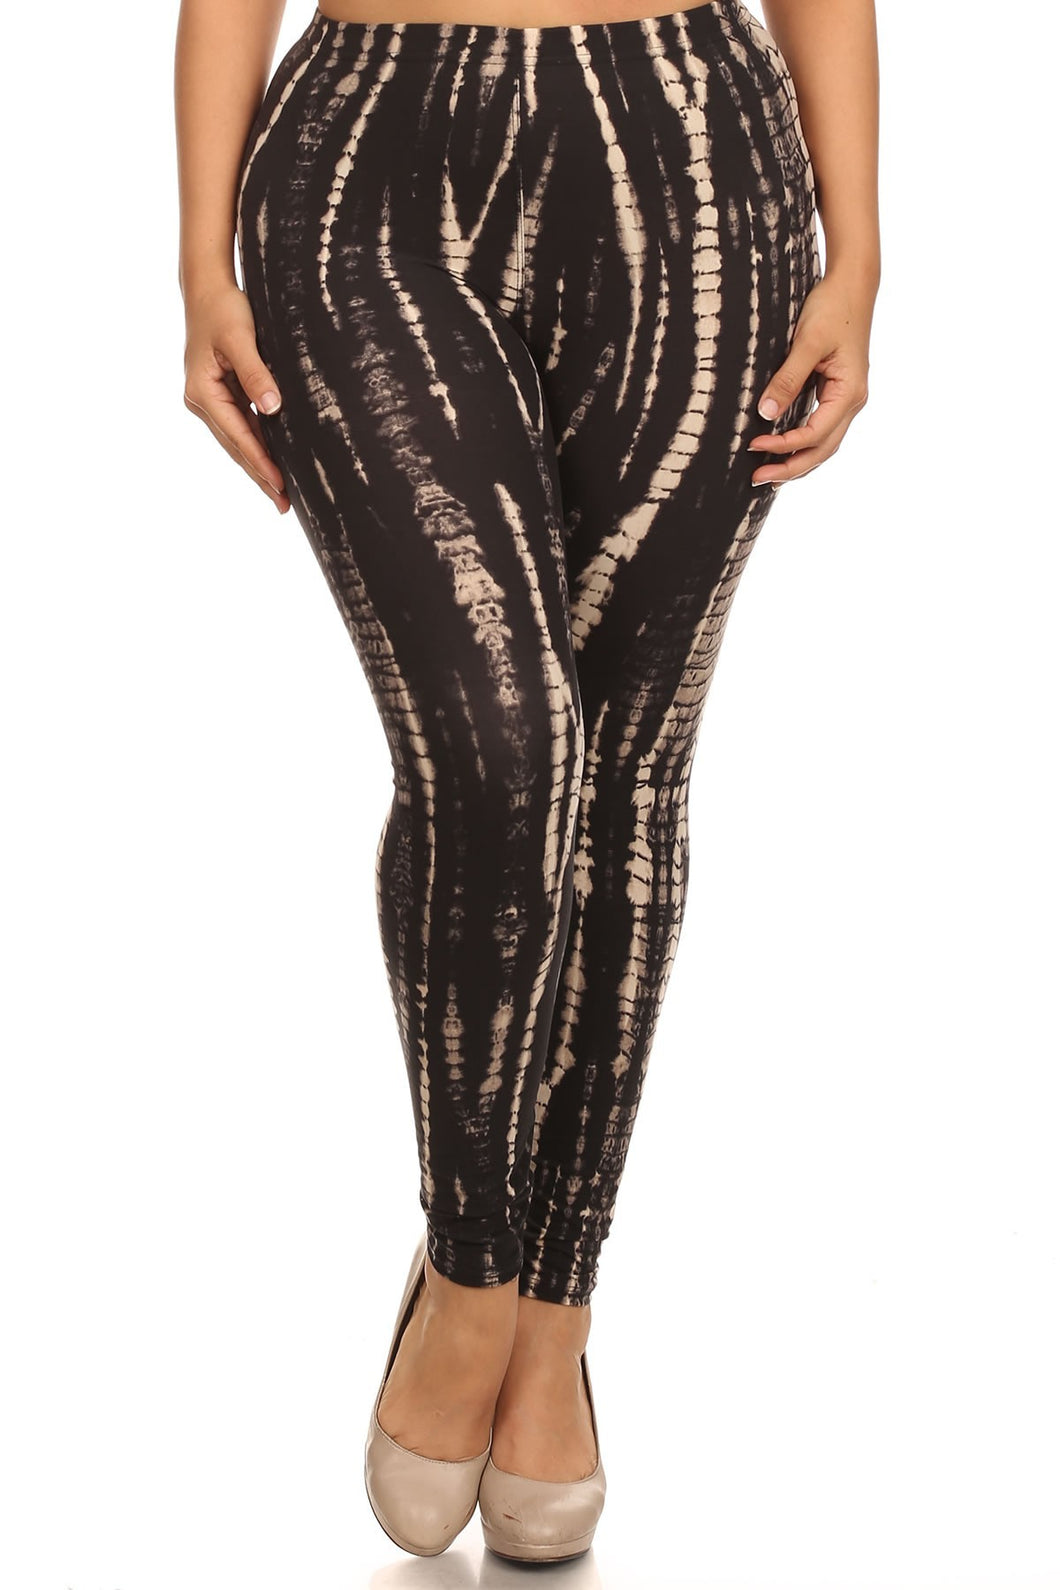 Plus Size Black & Tan tie dye Cropped Leggings With Banded High Waist